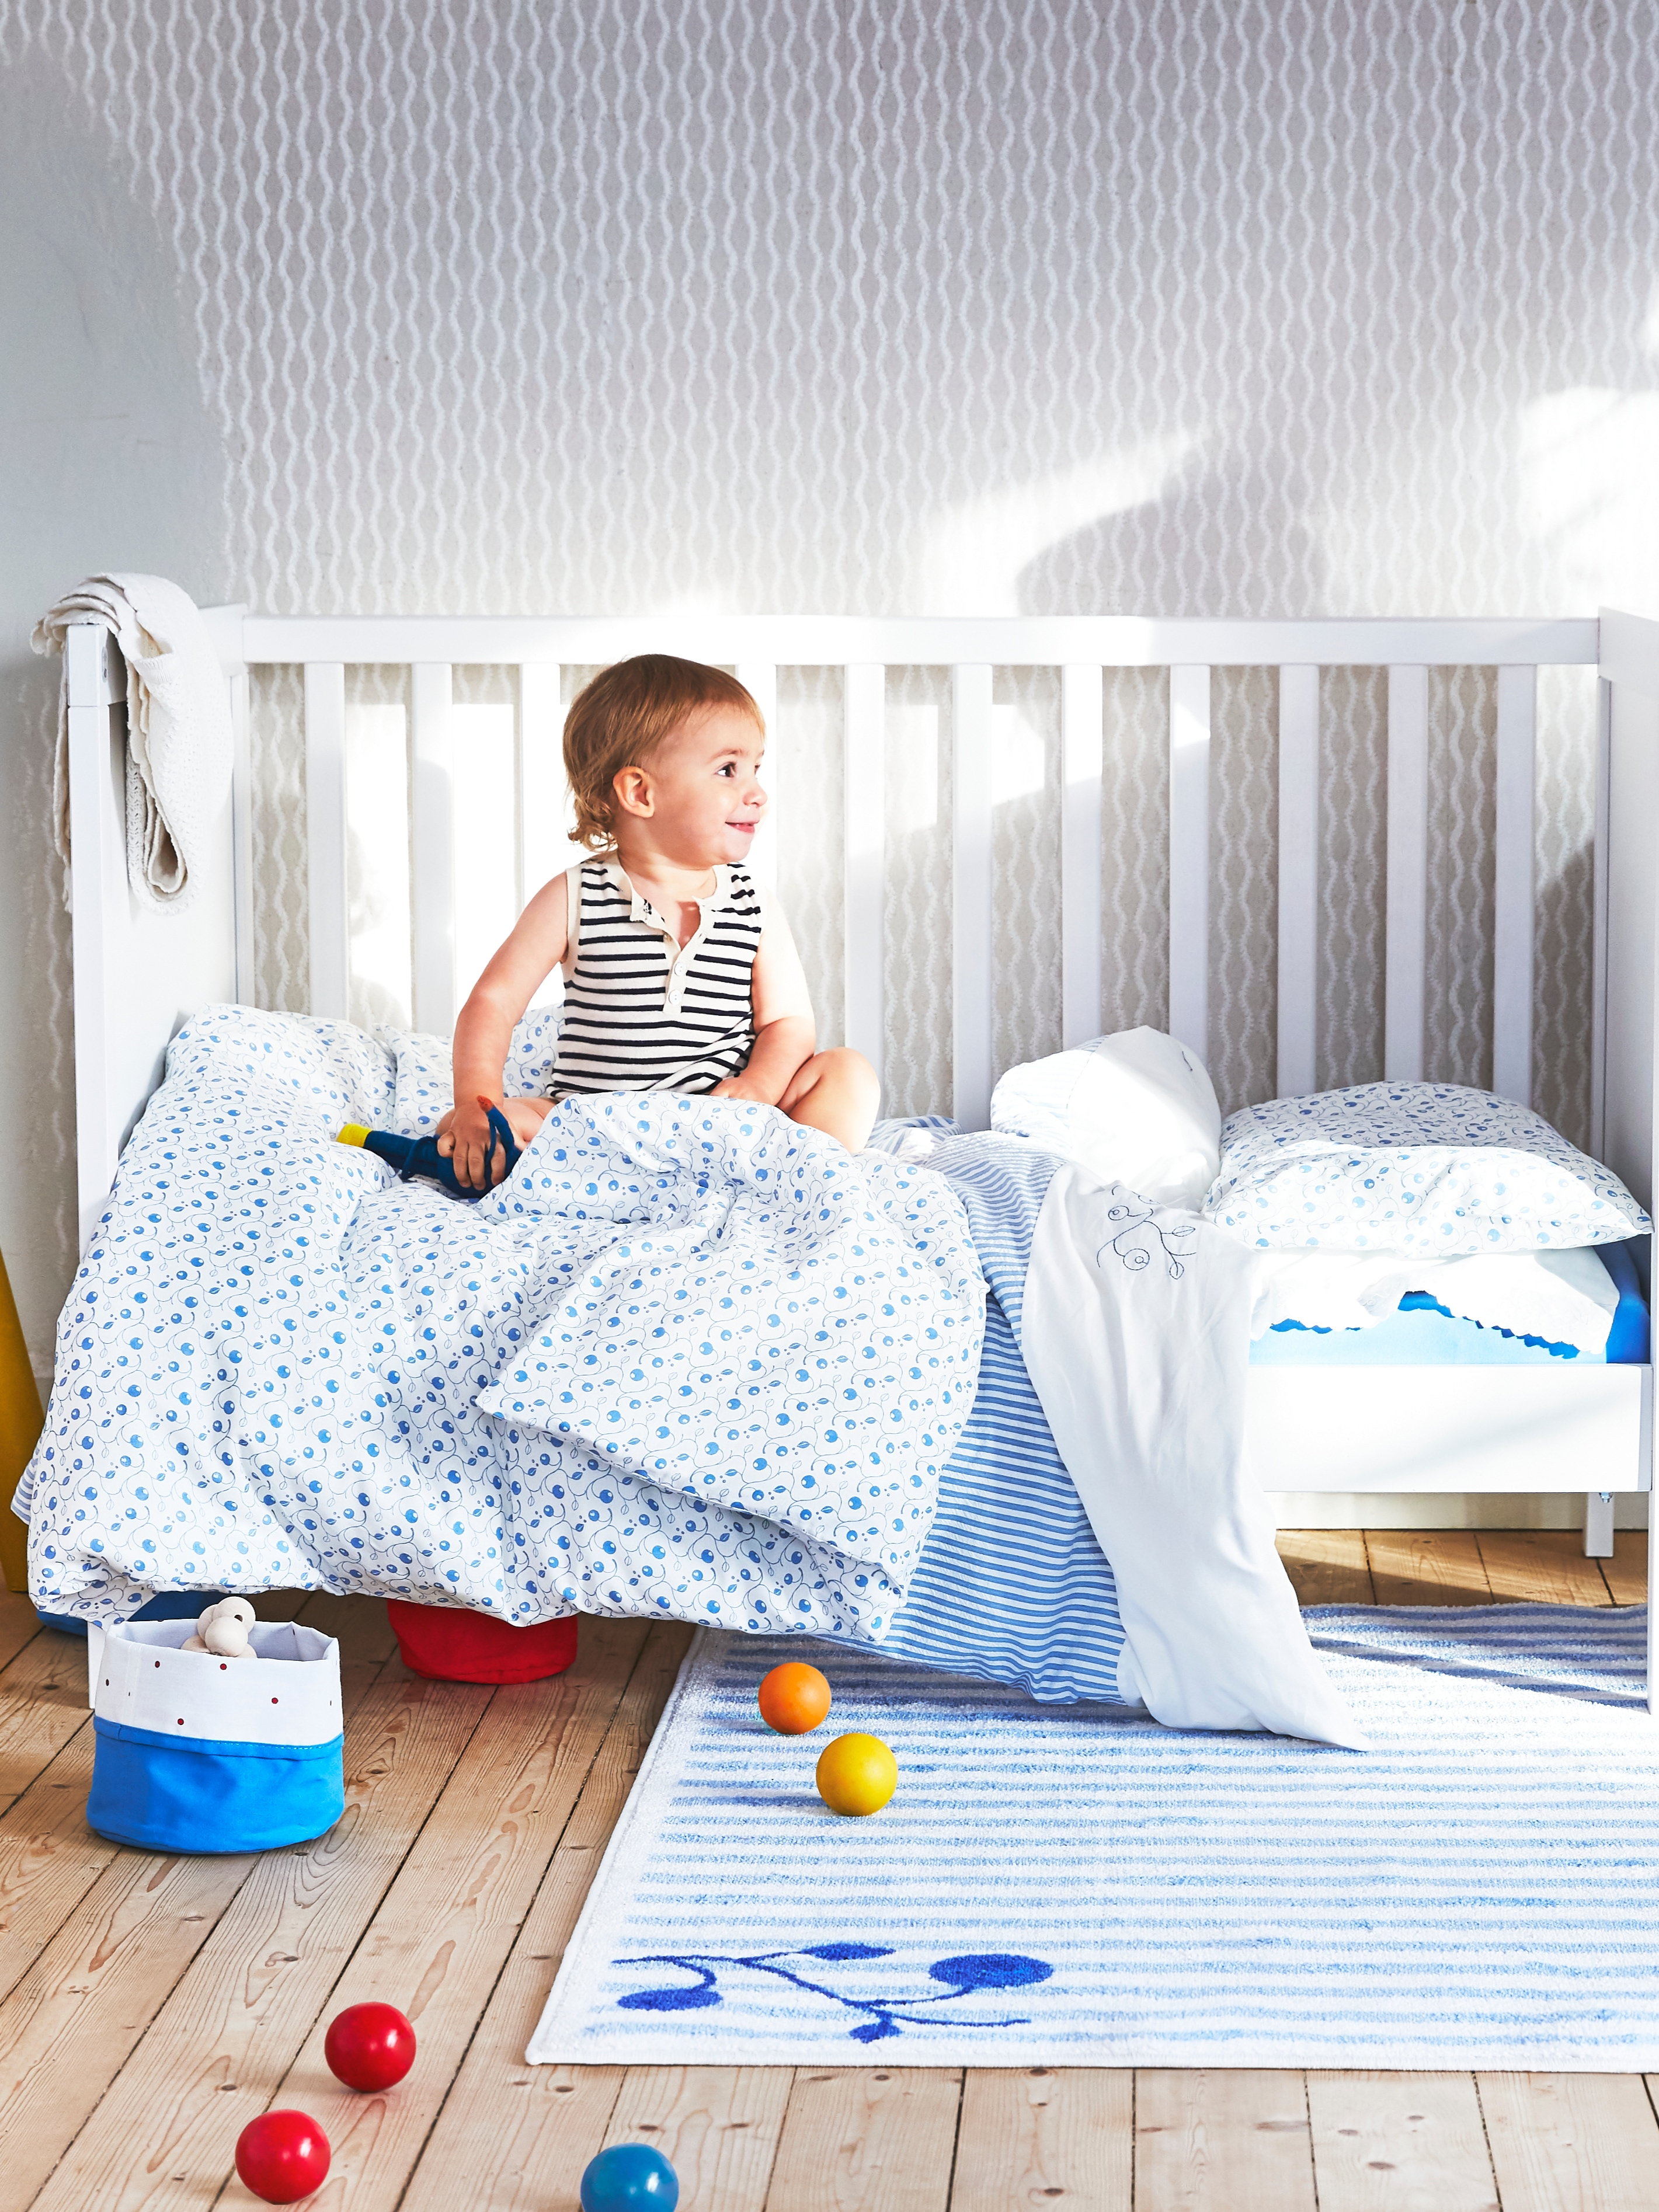 Toddler sits upright on a white SUNDVIK crib, that has one of its sides removed, with lots of blueberry-motif bedding on top.